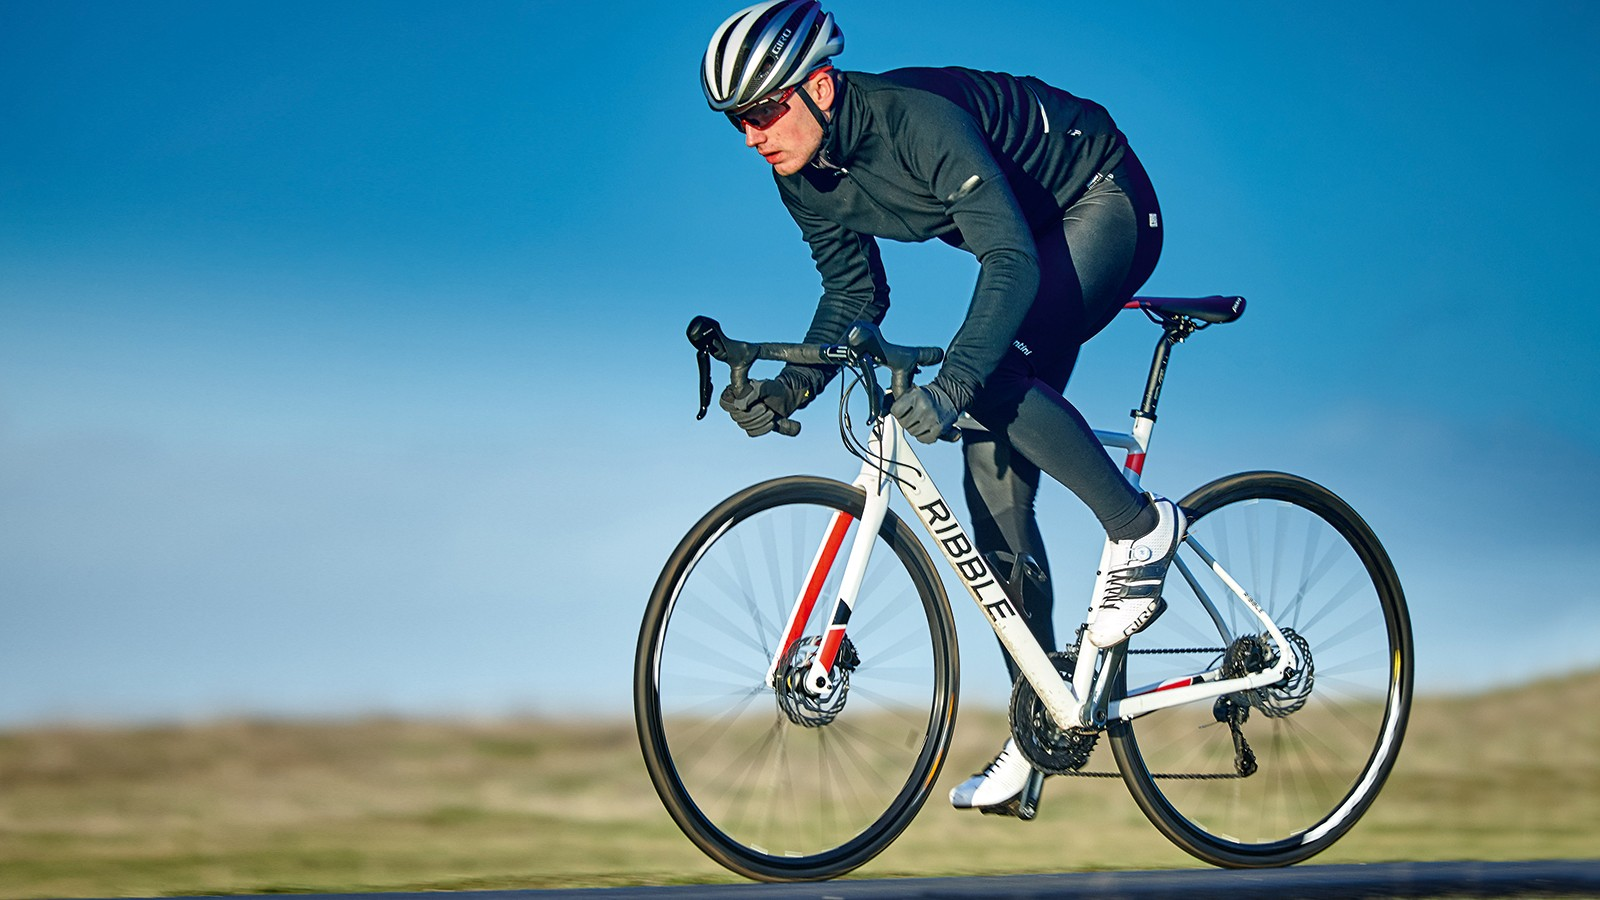 The Ribble's geometry lends itself well to speed